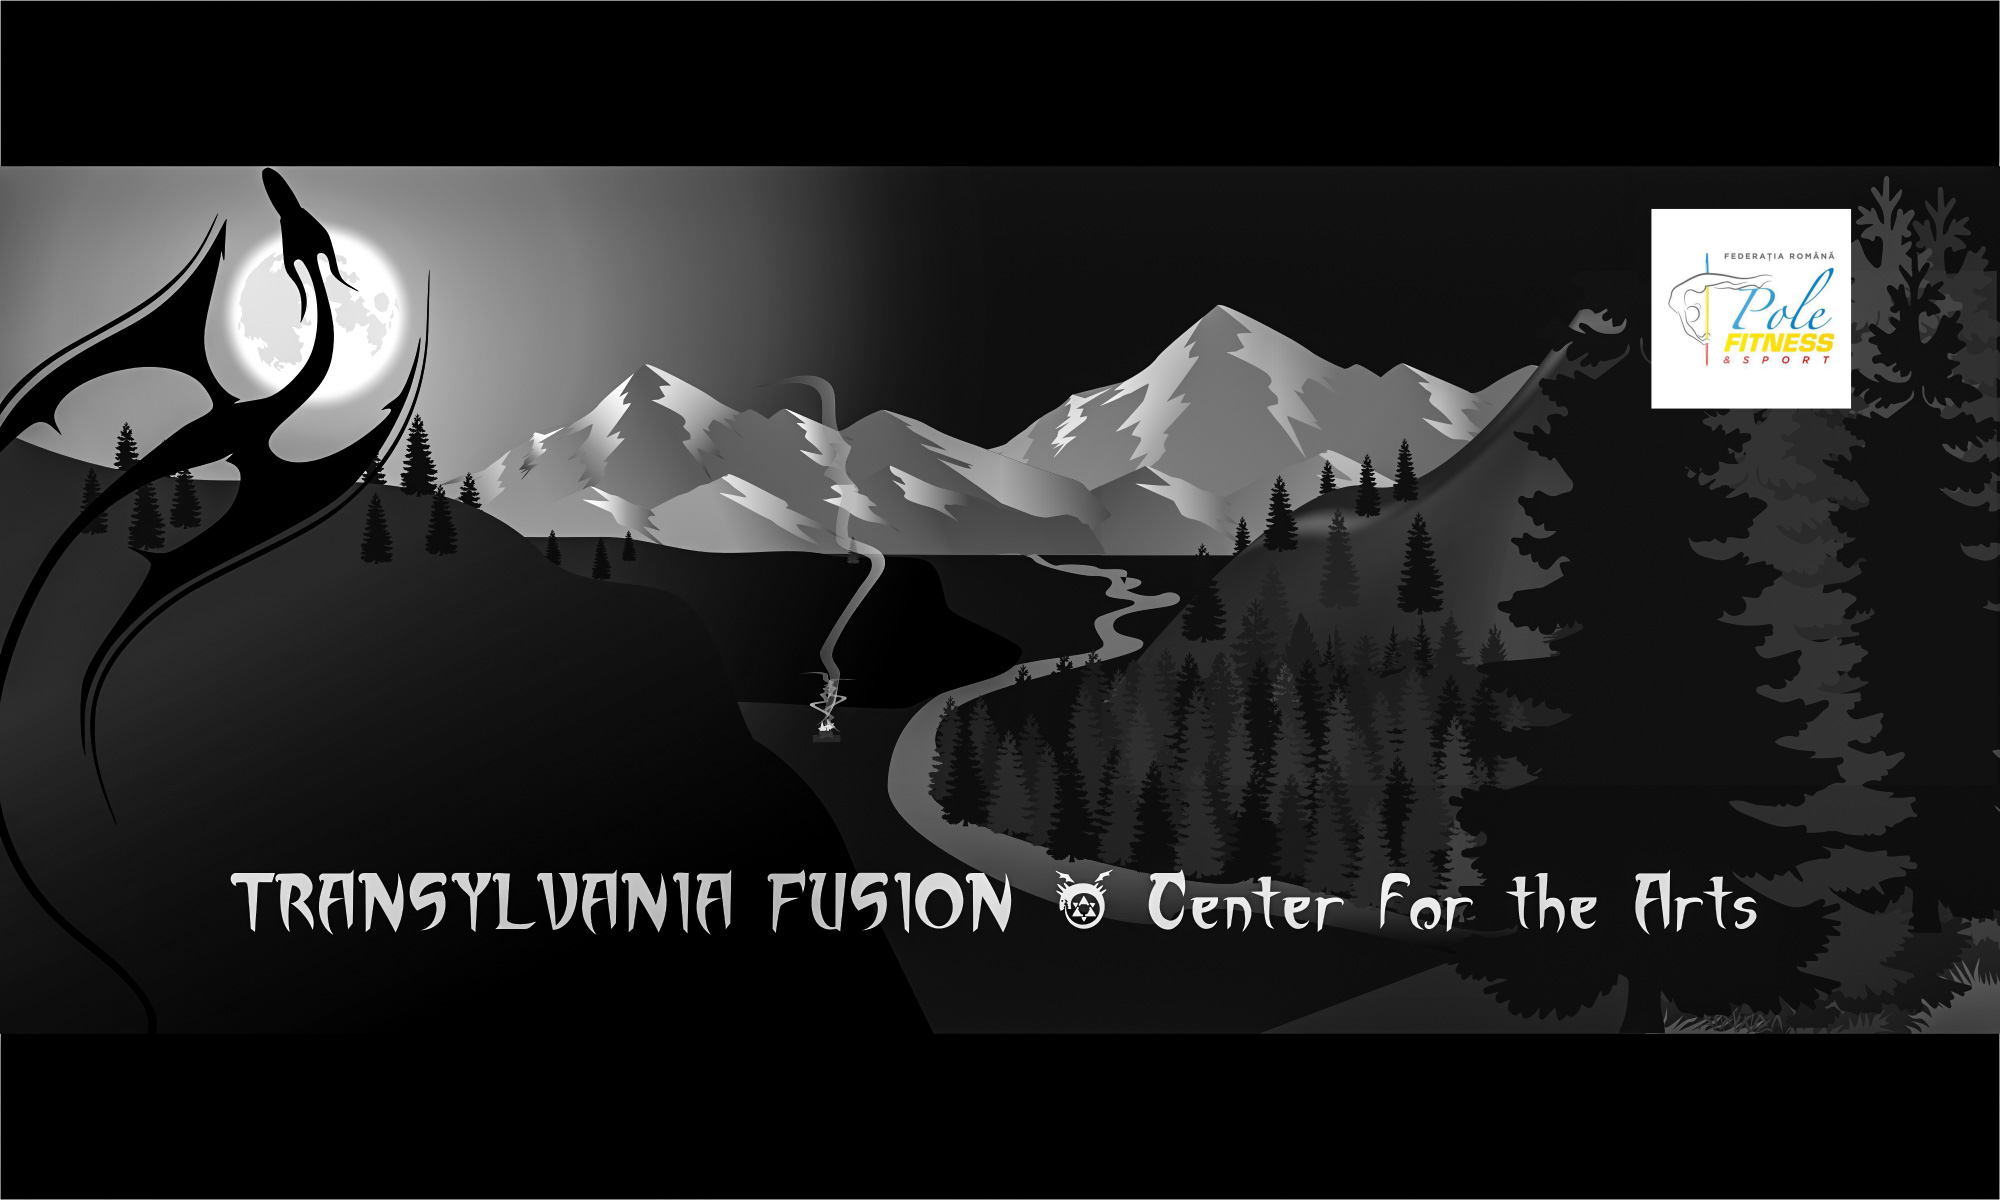 Transylvania Fusion - Center for the Arts